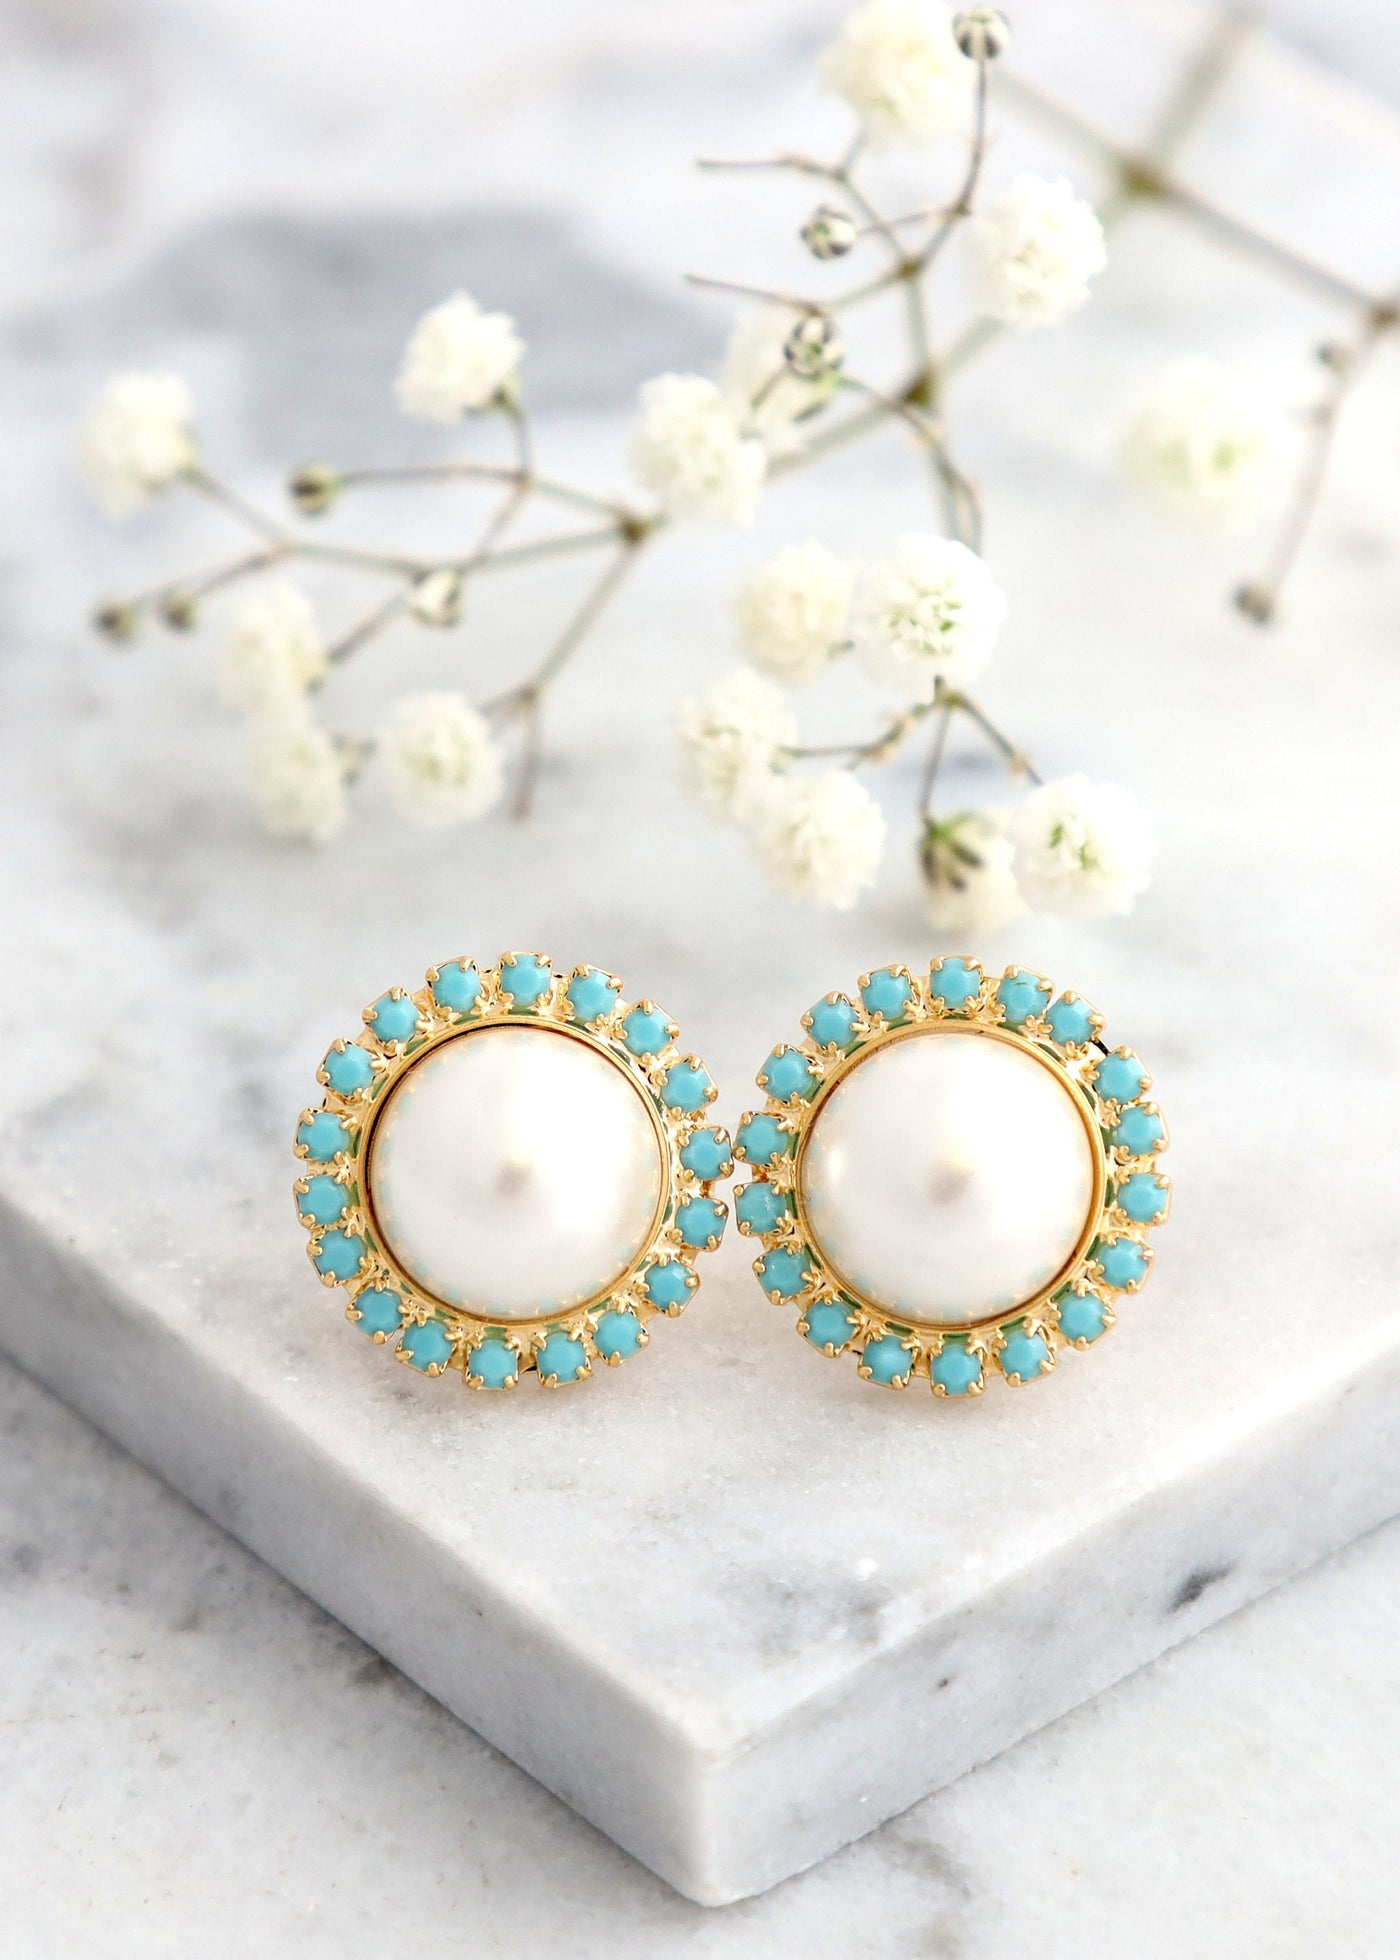 Pearl Earrings, Pearl Turquoise Stud Earrings, Gift For Her, Bridesmaids Earrings, Bridal Pearl Earrings, Bridal Swarovski Turquoise Studs